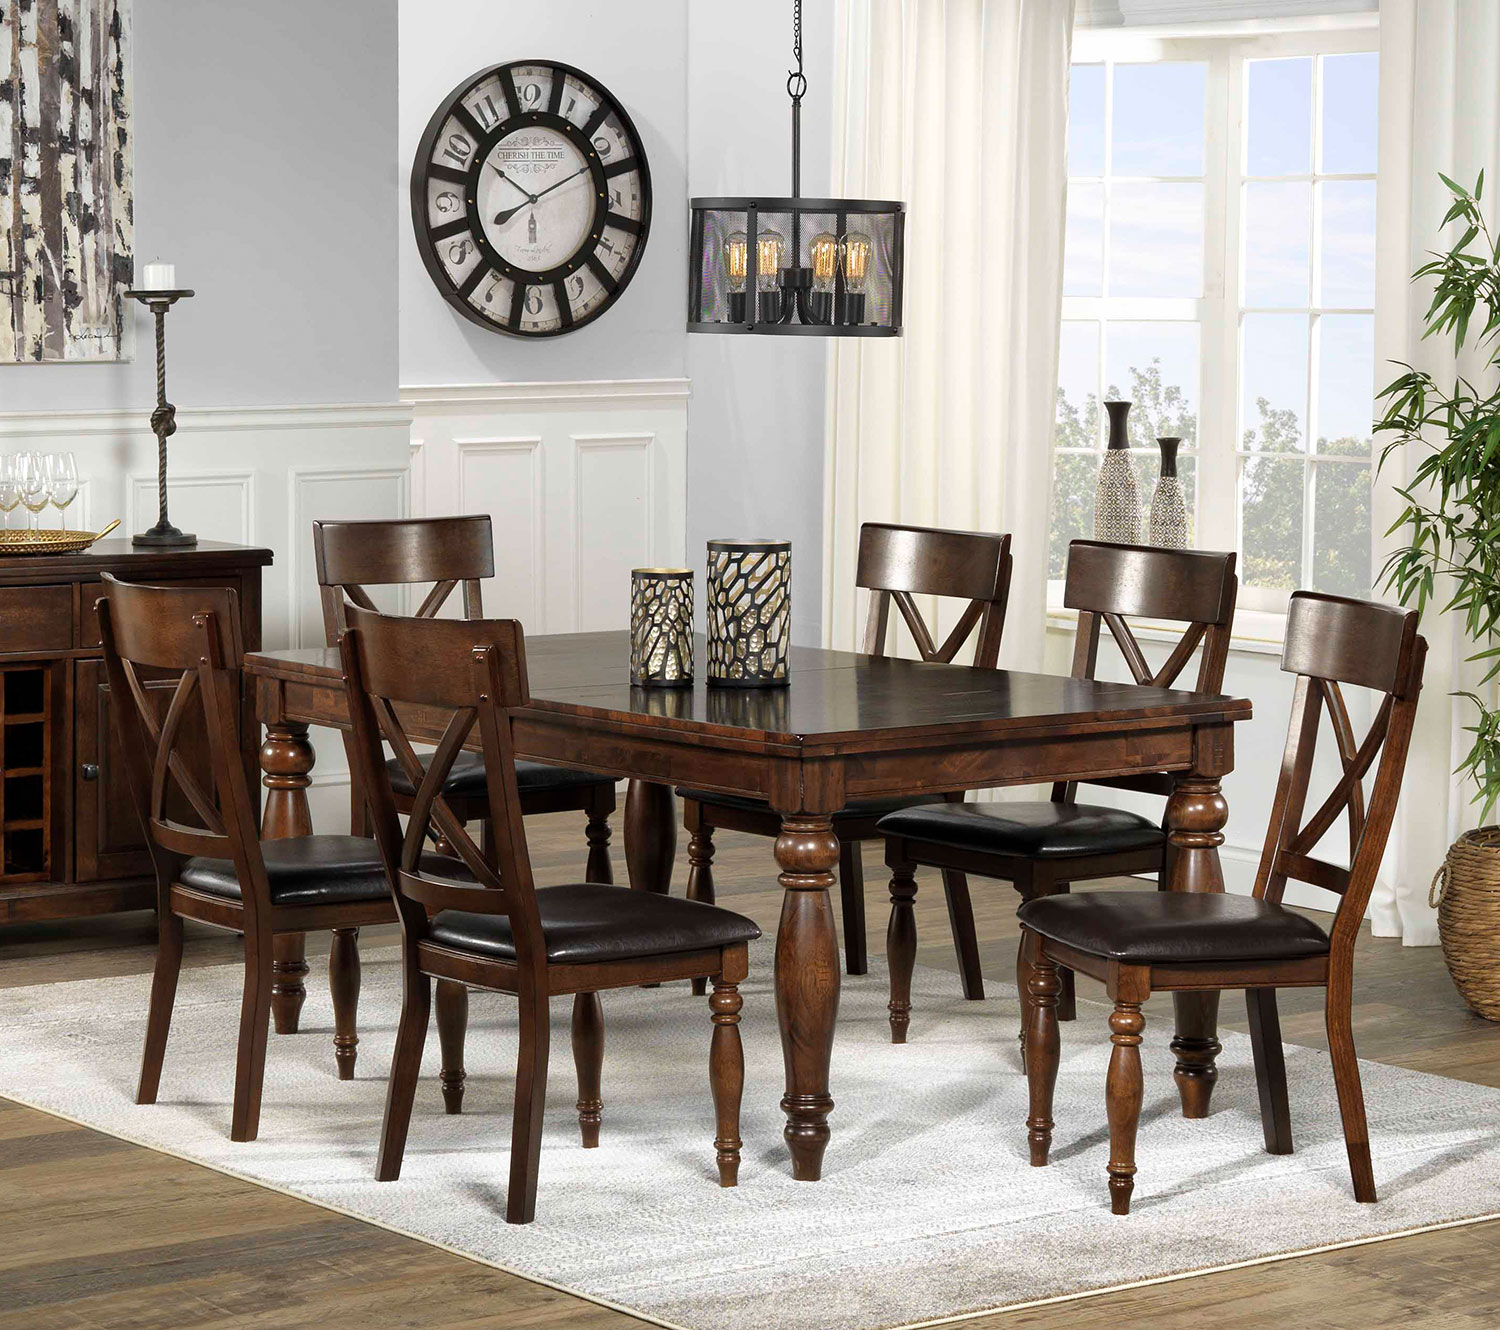 Kingstown 7 Piece Dining Room Set